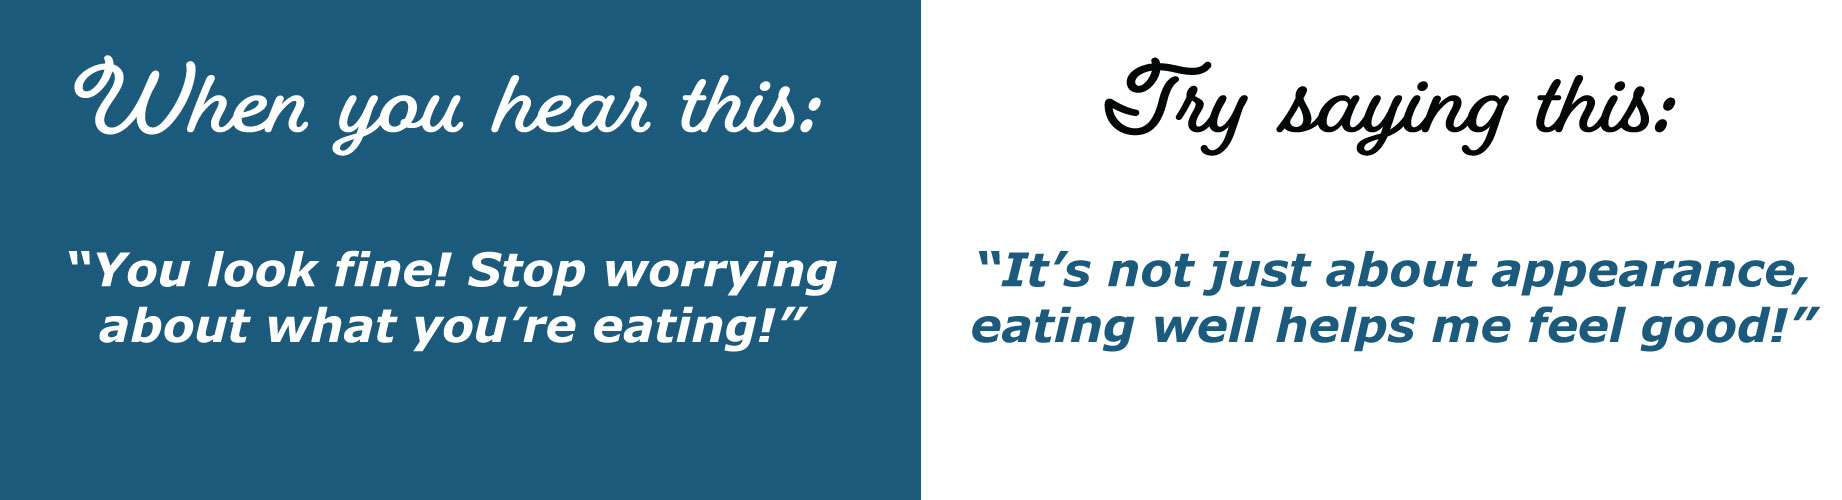 """If they say… """"You look fine! Stop worrying about what you're eating!"""" You could respond… """"It's not just about appearance, balanced eating helps me feel my best!"""""""